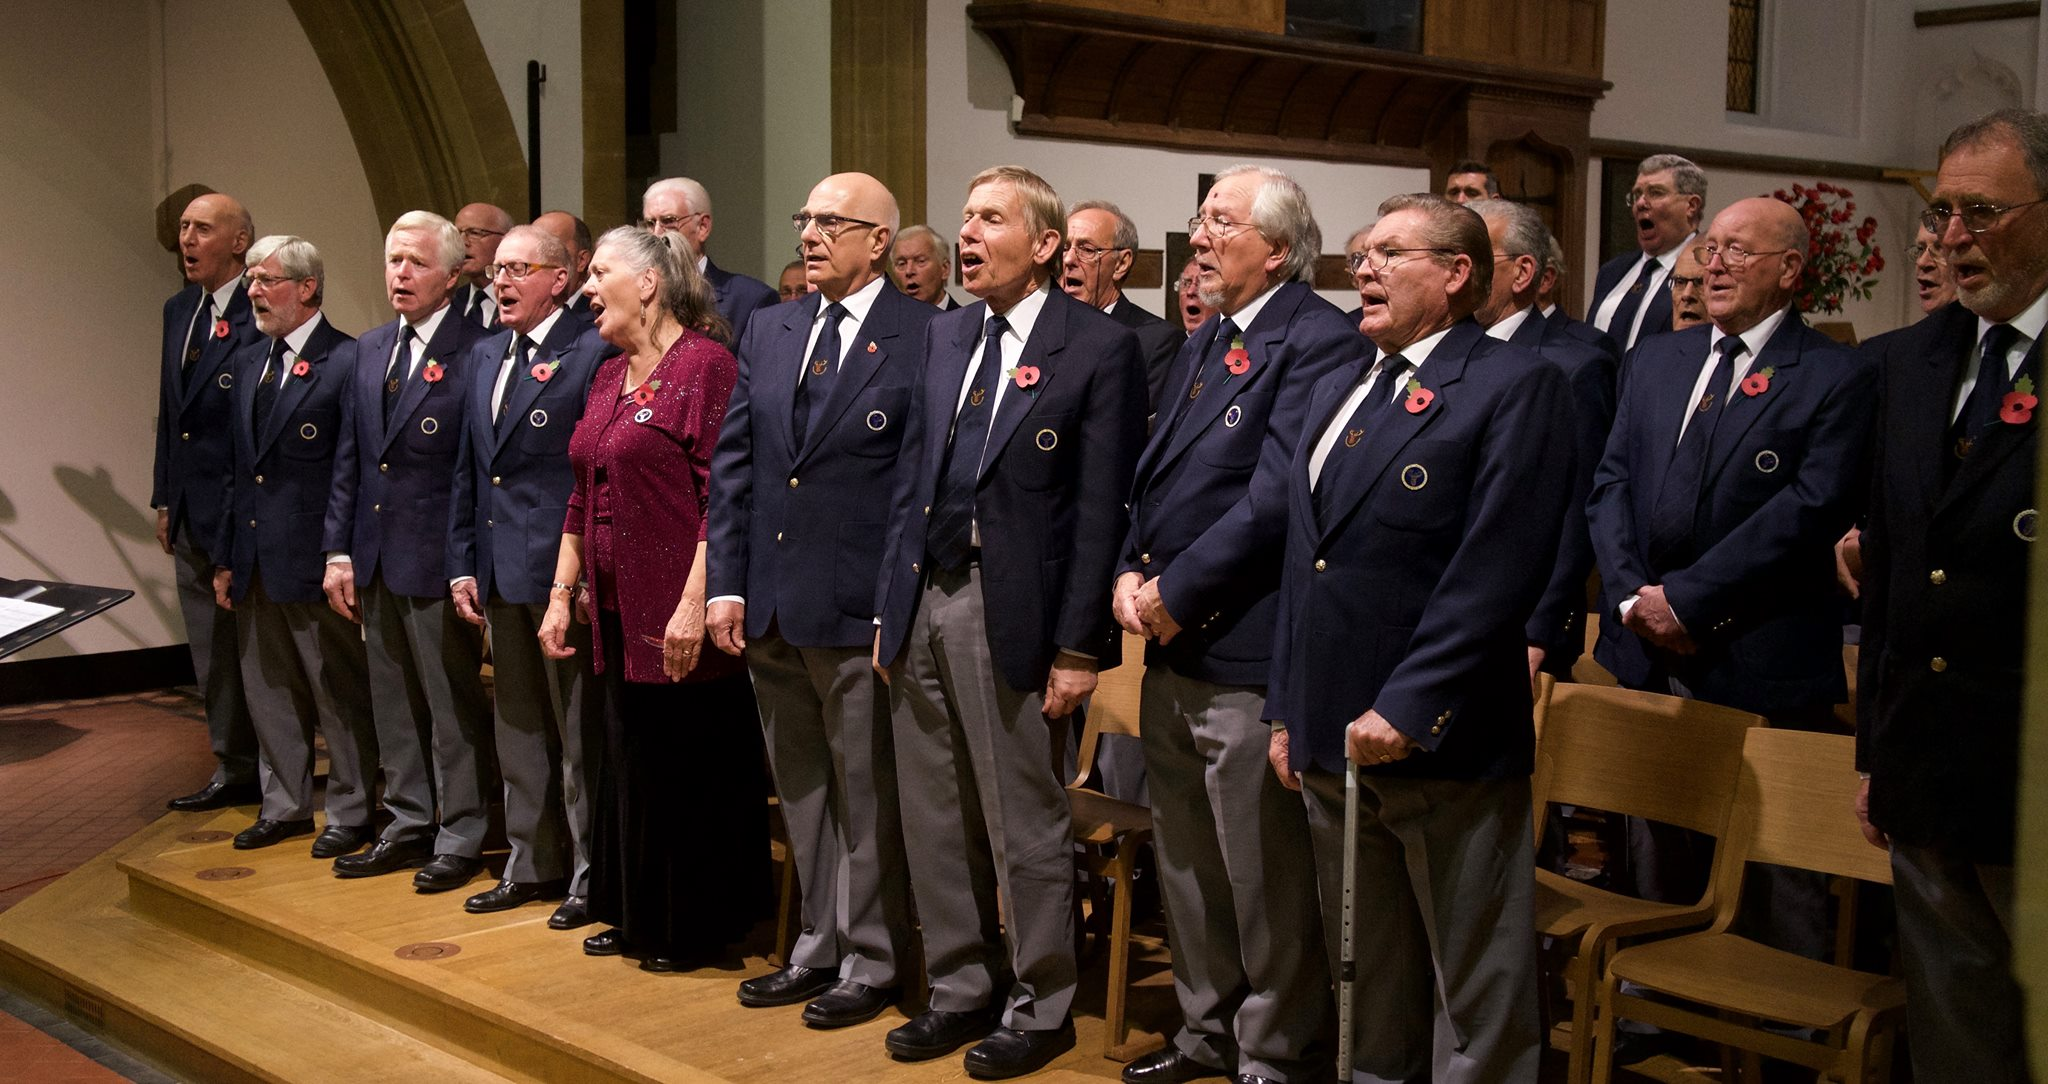 Minehead Male Voice Choir